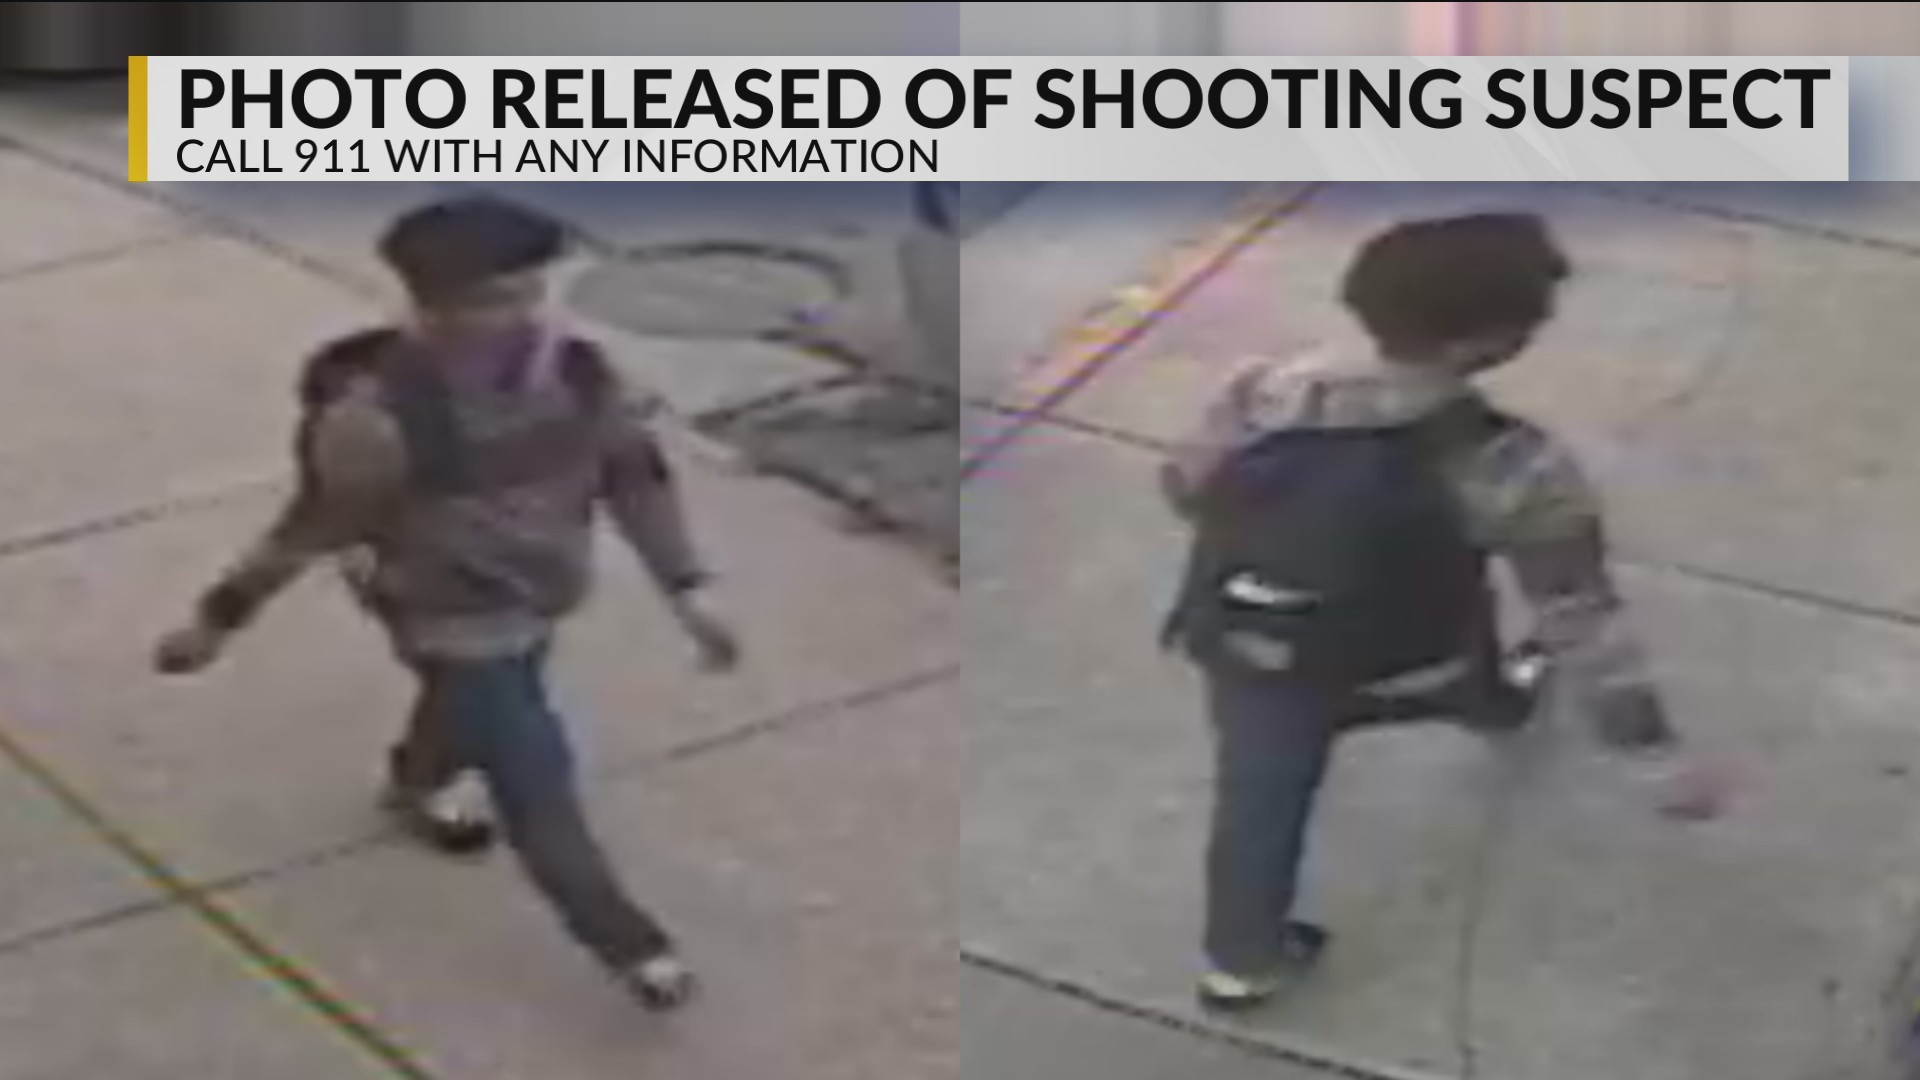 Charleston Police Release Photos of Iowa Street Shooting Suspect